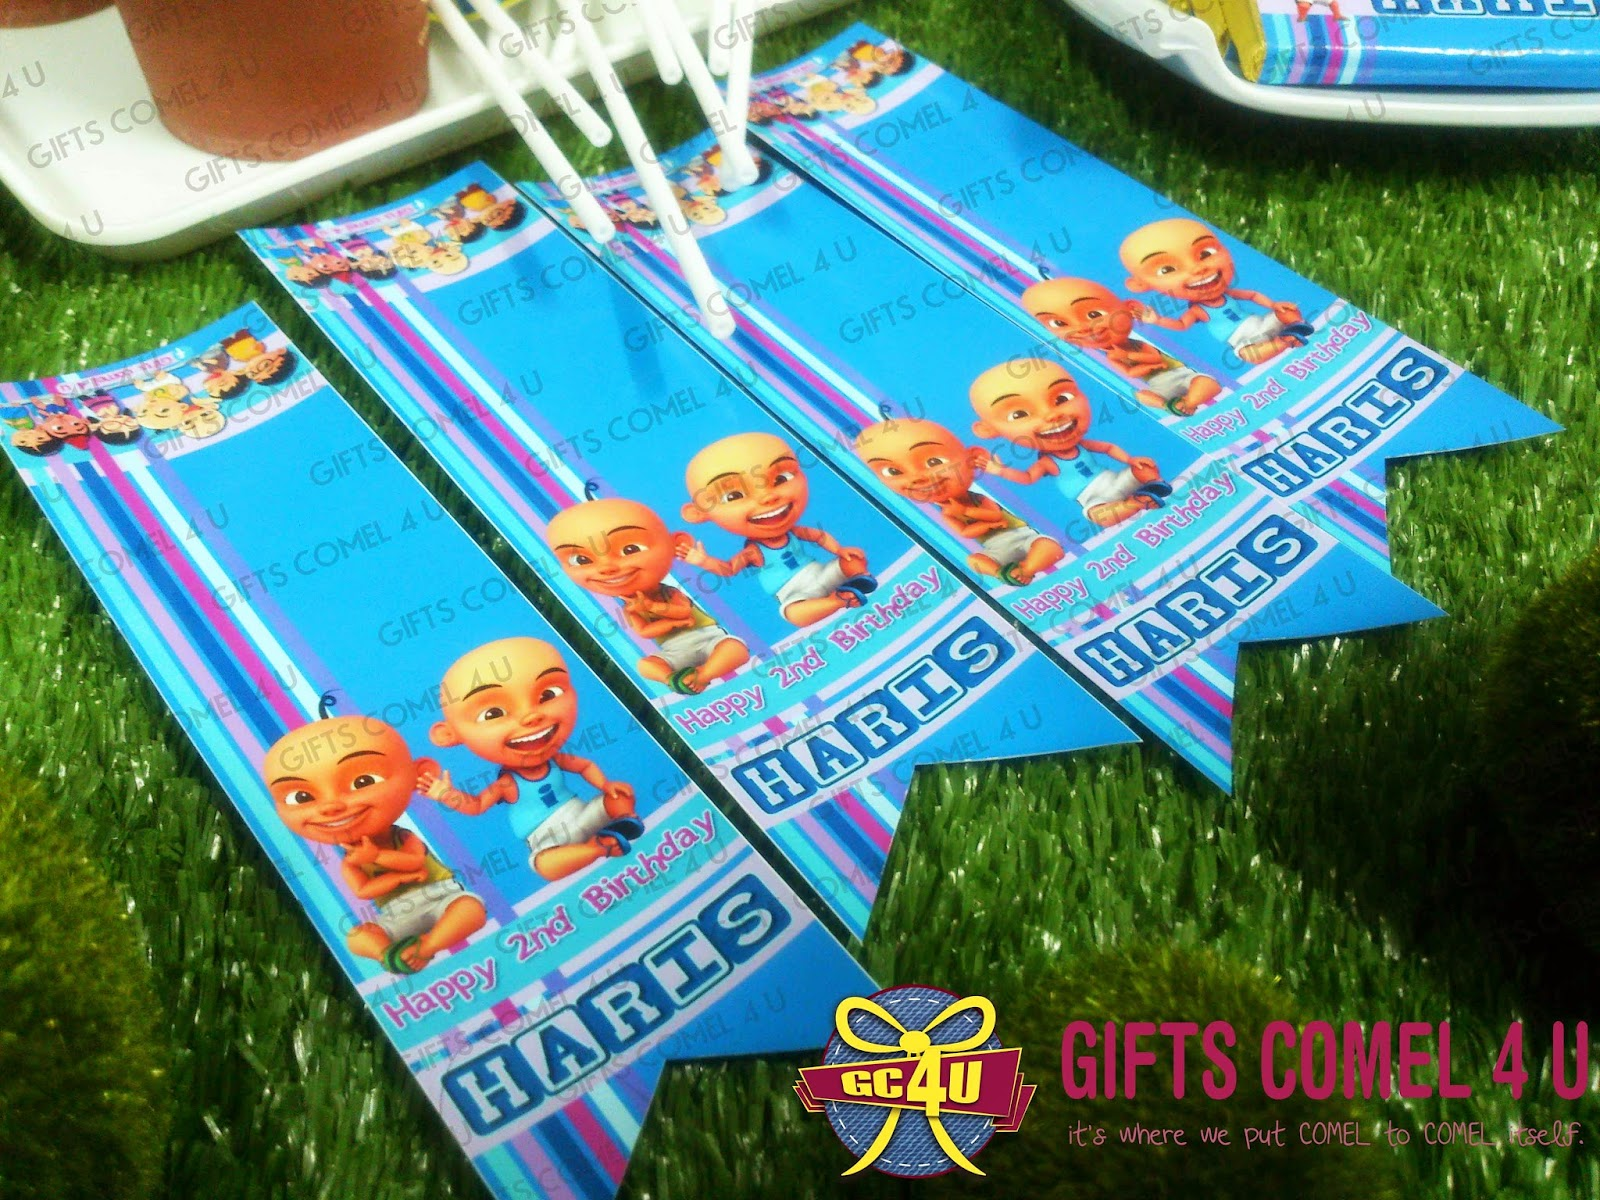 Gifts comel 4 u ordered by faerah nasir upin ipin blue upin ipin bluegreentheme medium chocolates with personalized wrapper stopboris Image collections